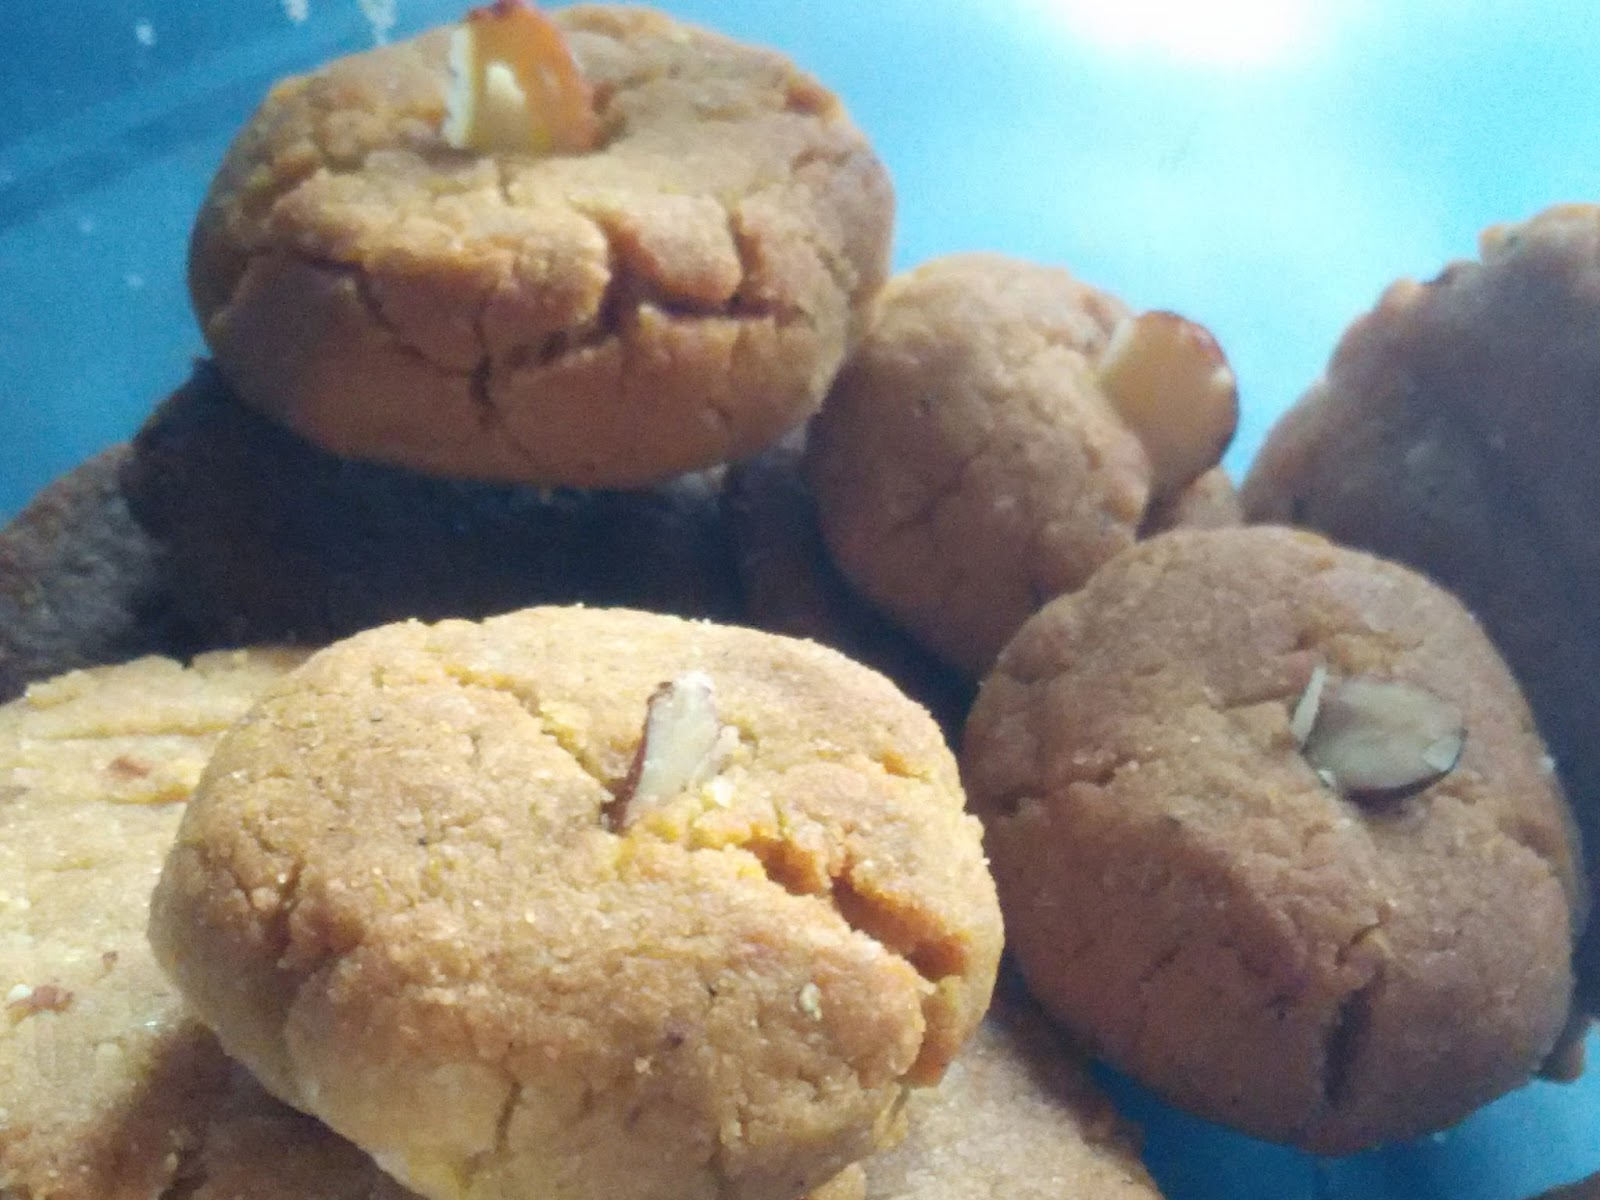 Atta Nankhatais Easy To Dish Out Delicious In Every Bite Whole Wheat Flour Cookies Anyone If You Are A Cookie Lover As Well As A Health Freak